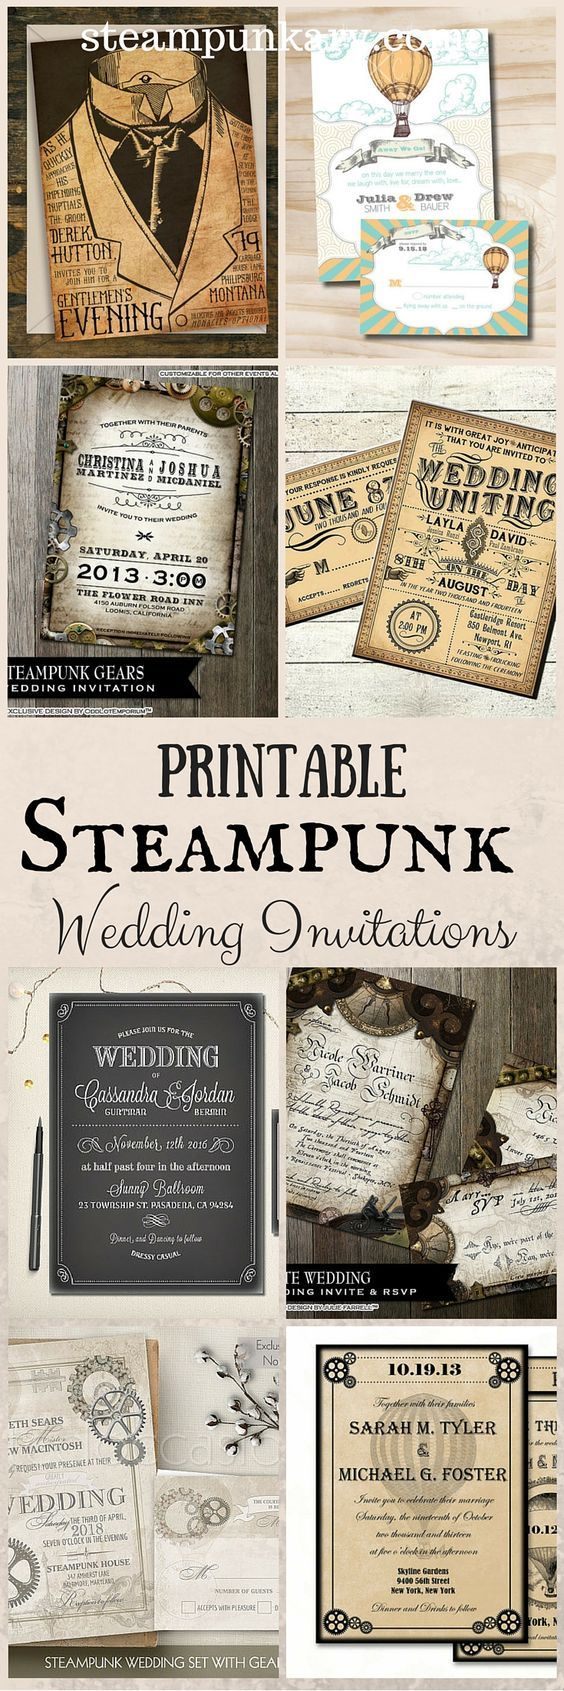 Printable Steampunk Wedding Invitations                                                                                                                                                                                 Más